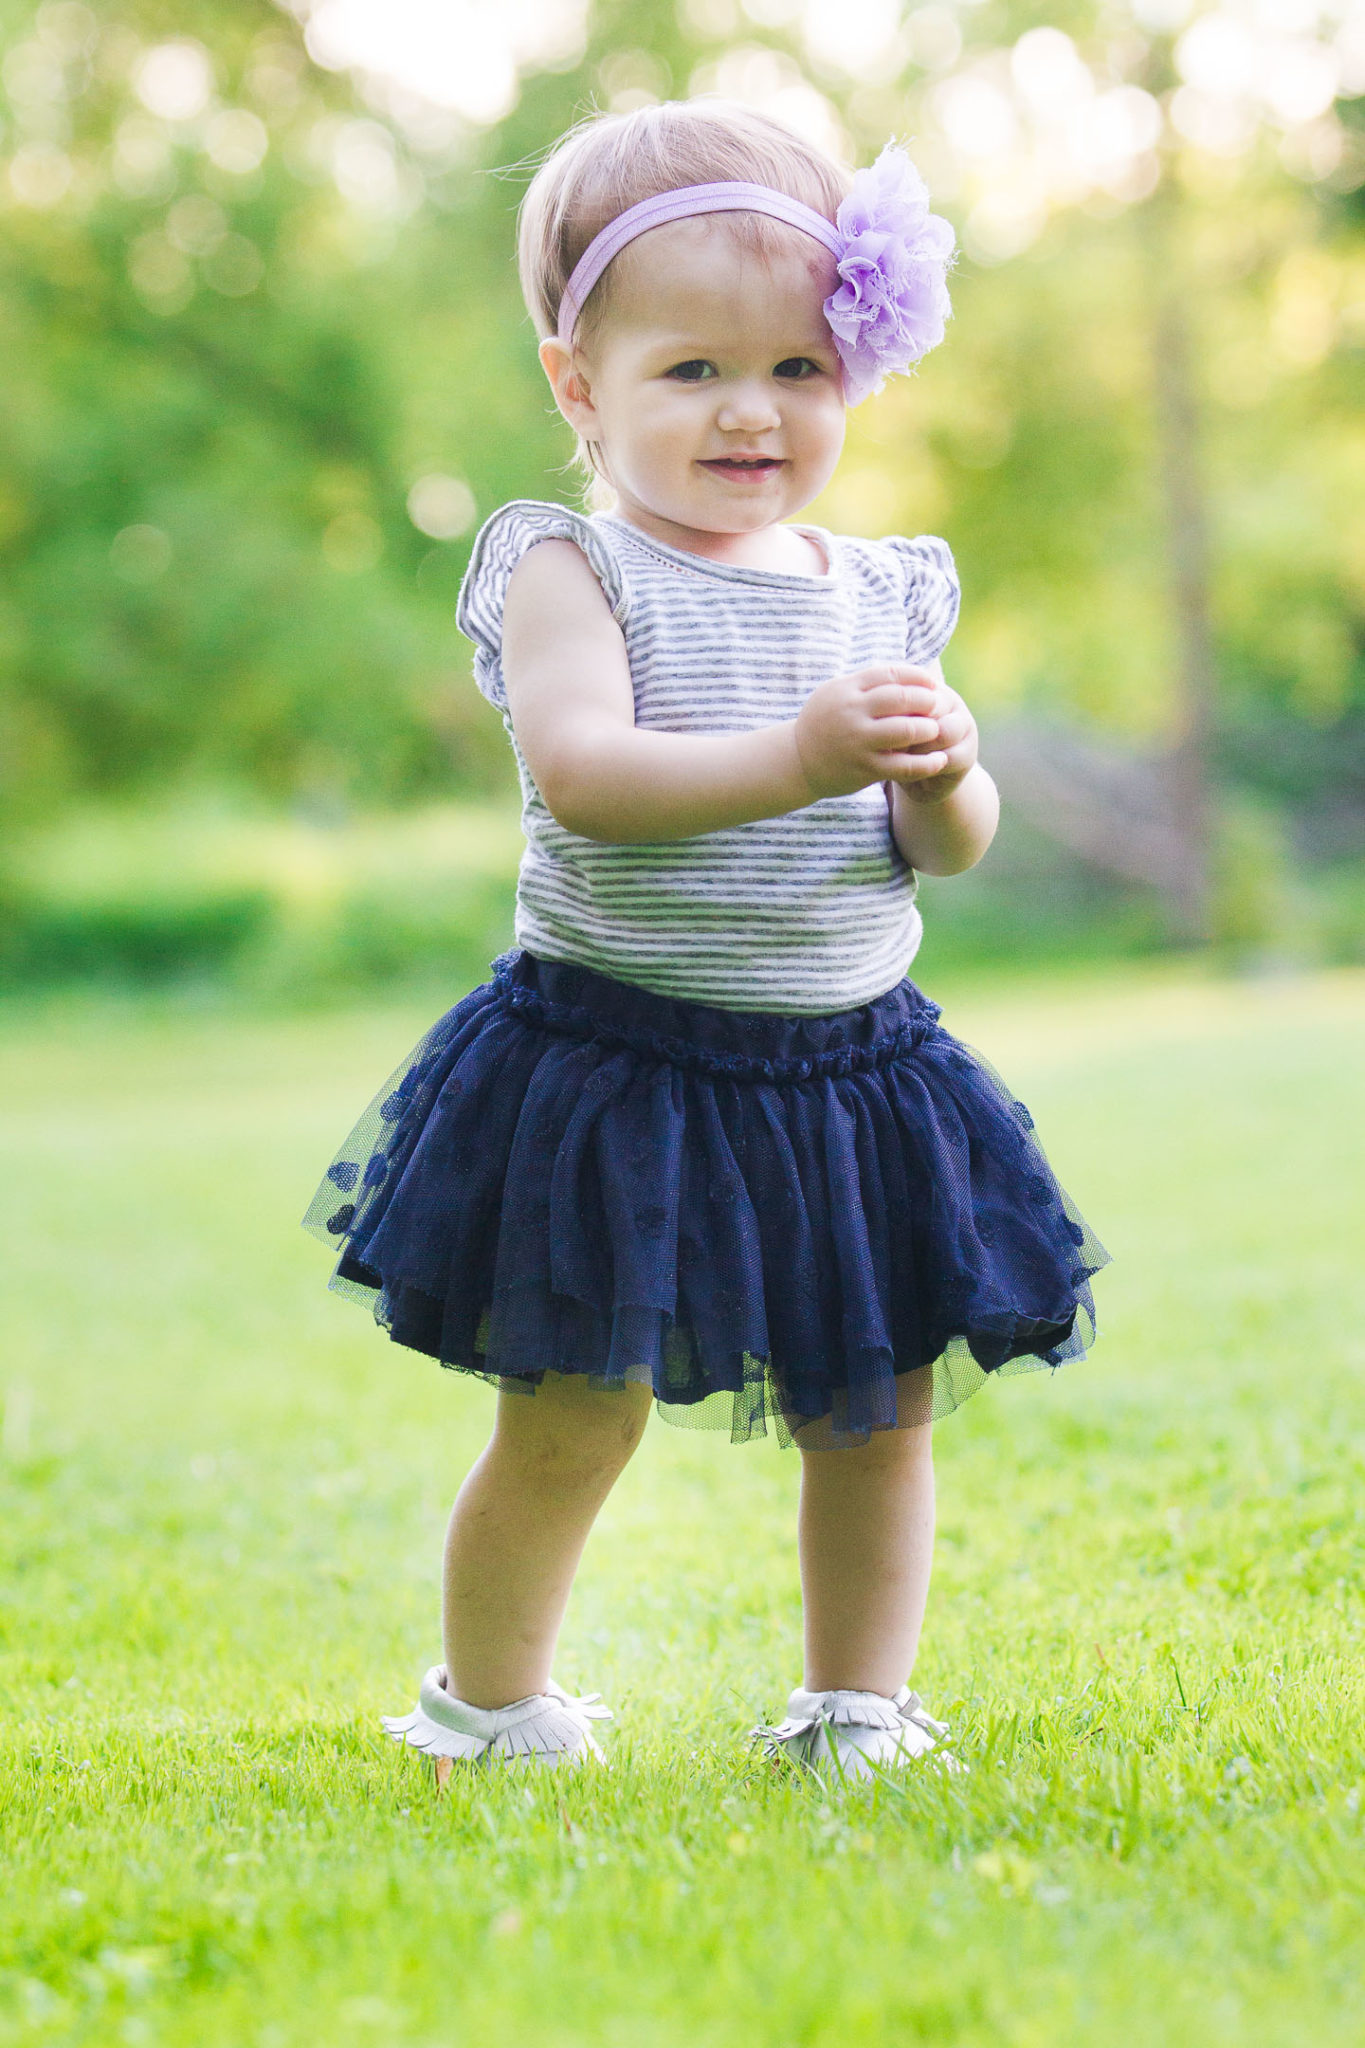 Child Portrait Photography in Alliston, Ontario